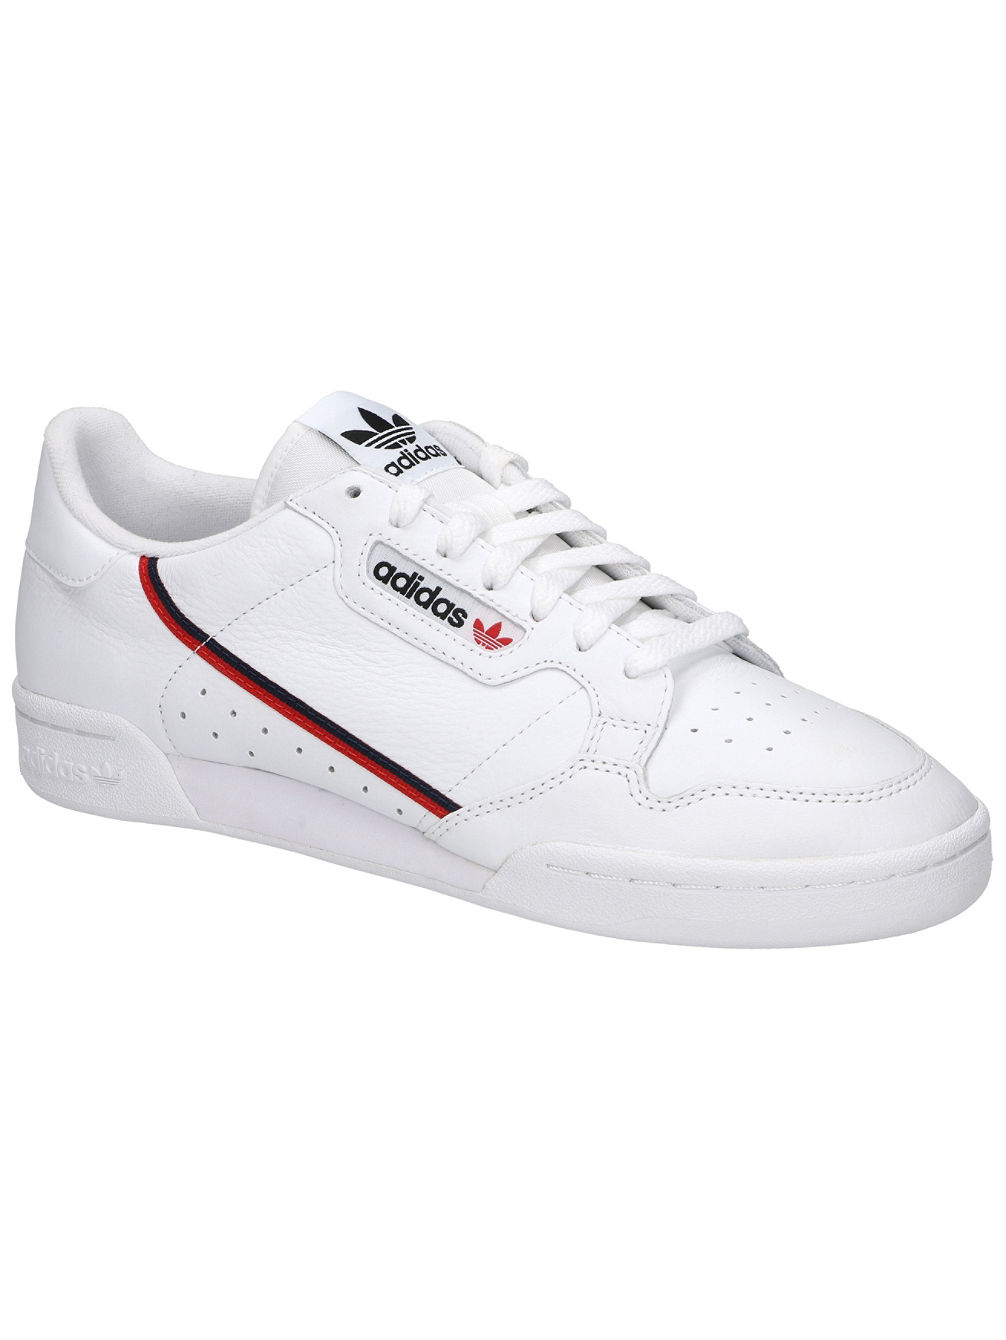 bd178611b1 Buy adidas Originals Continental 80 Sneakers online at Blue Tomato